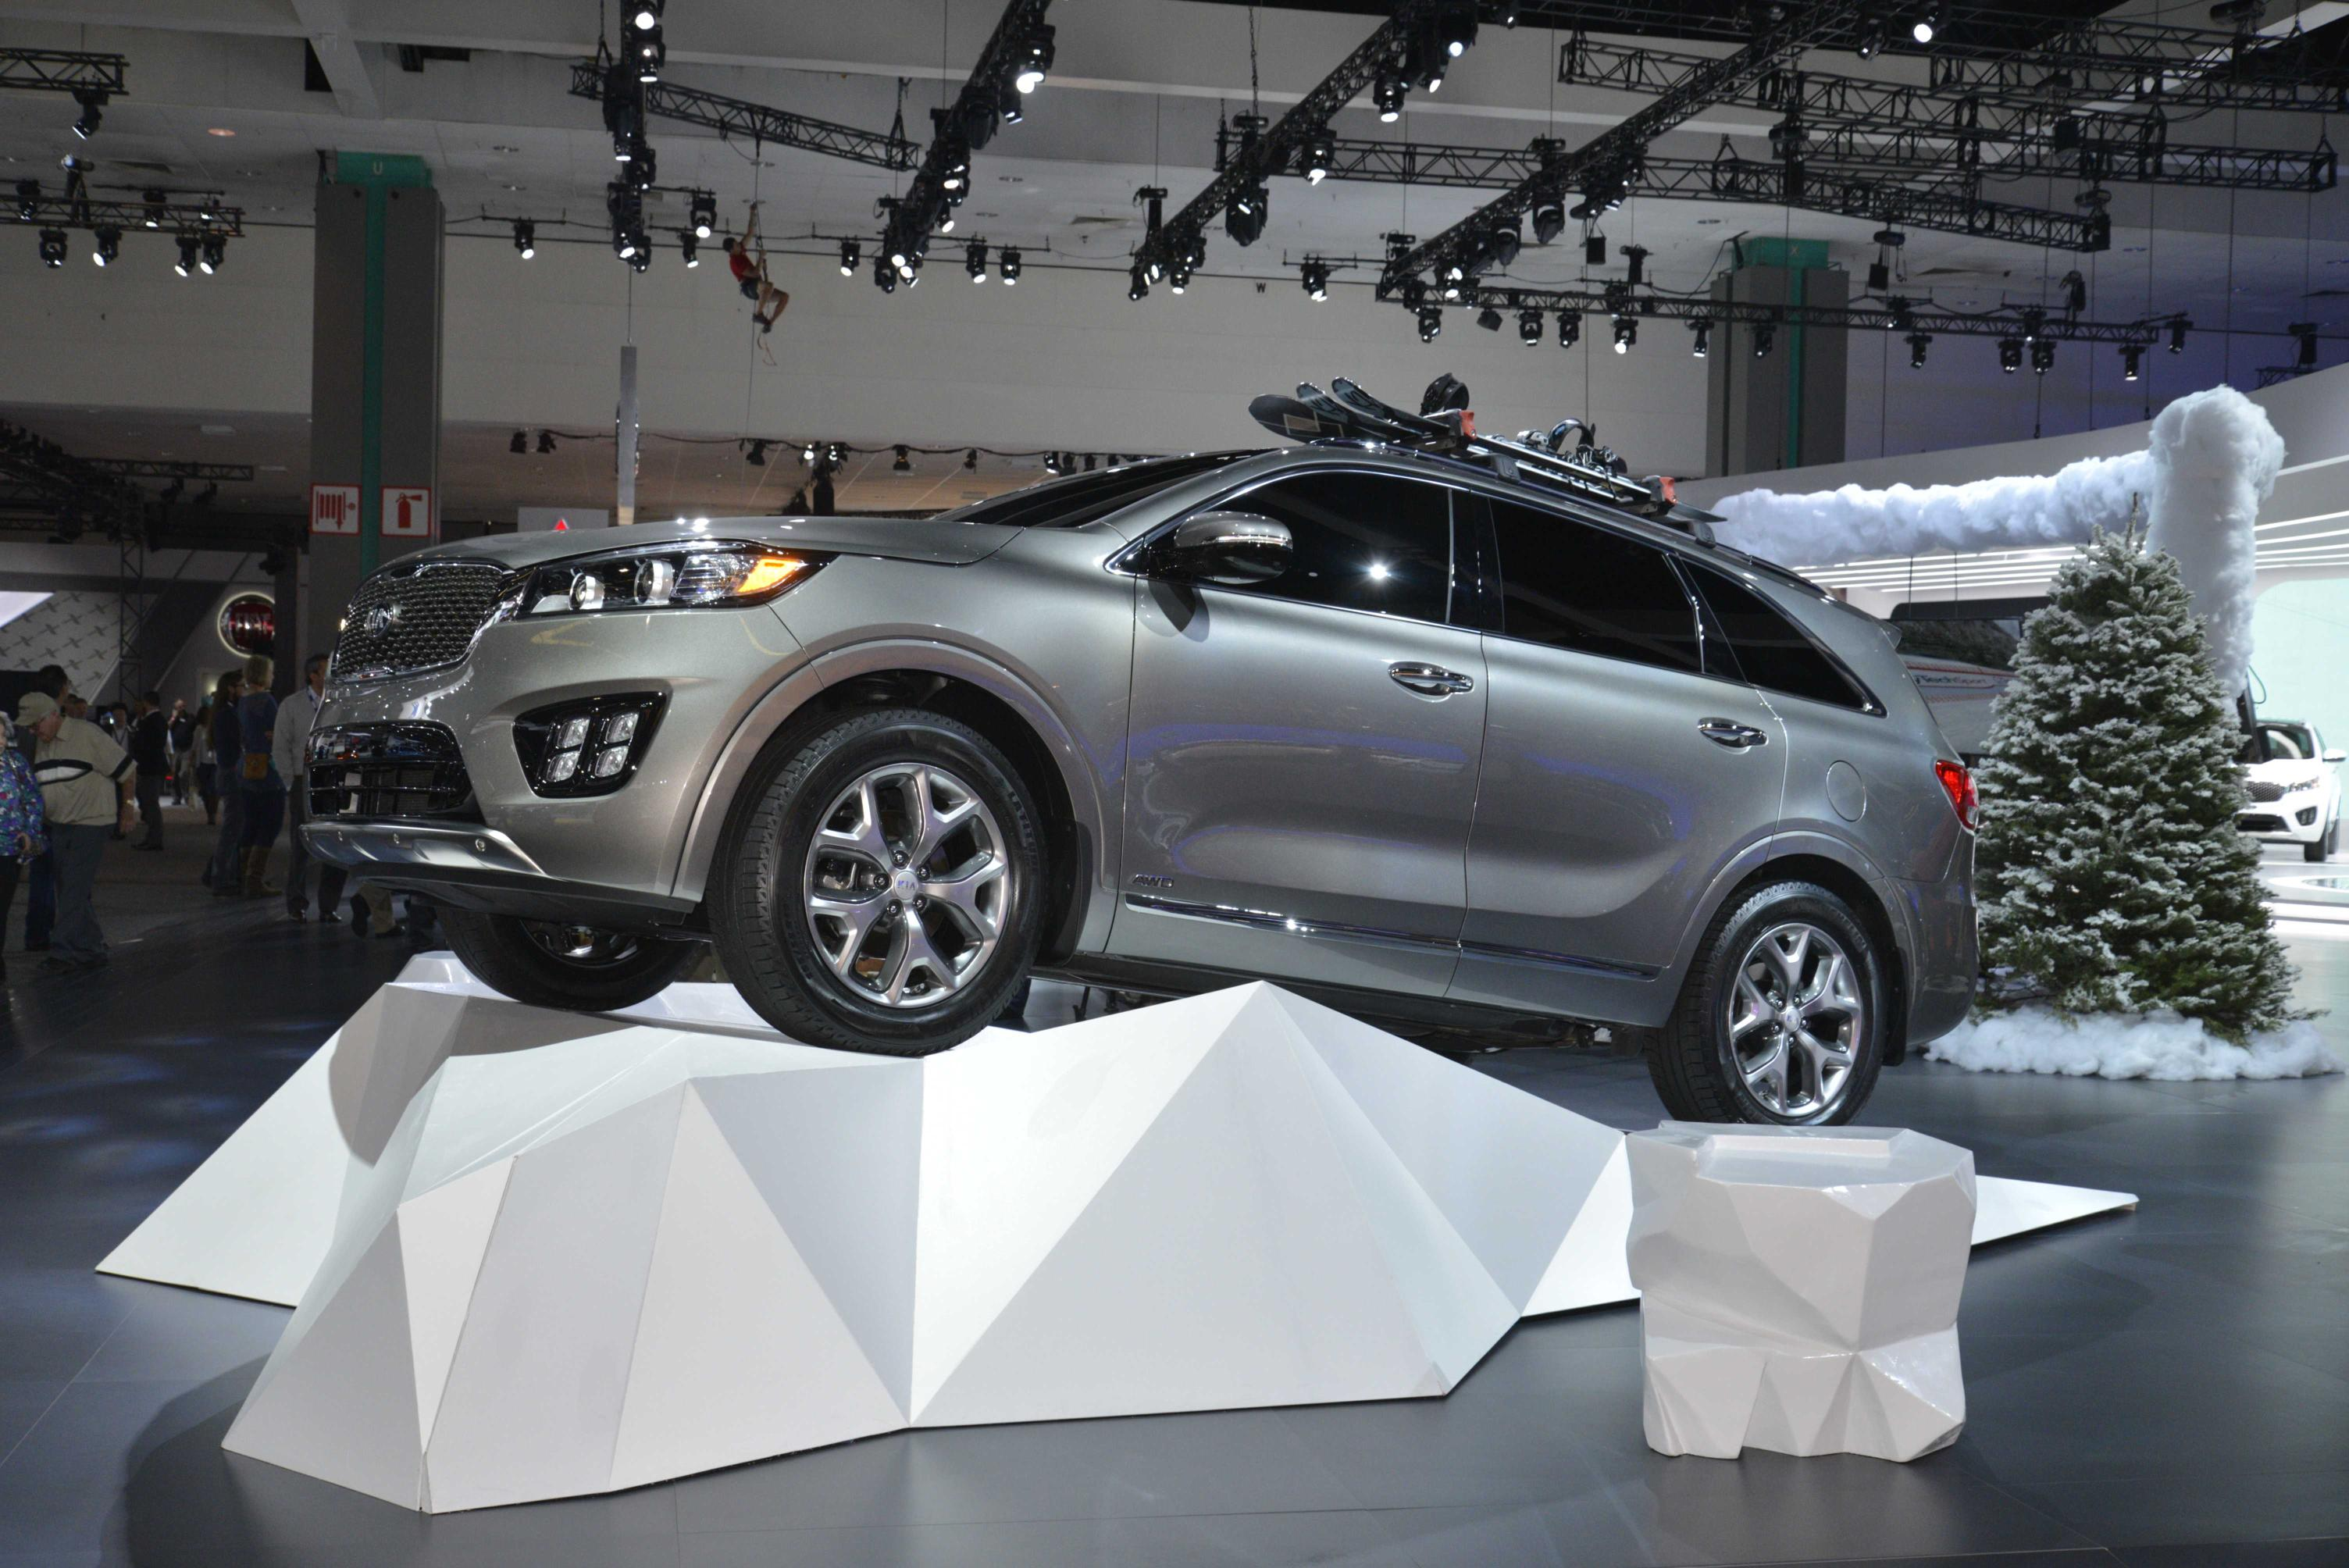 all auto sportage hr players new at turbo sx l a american kia angeles debut awd show north english makes los